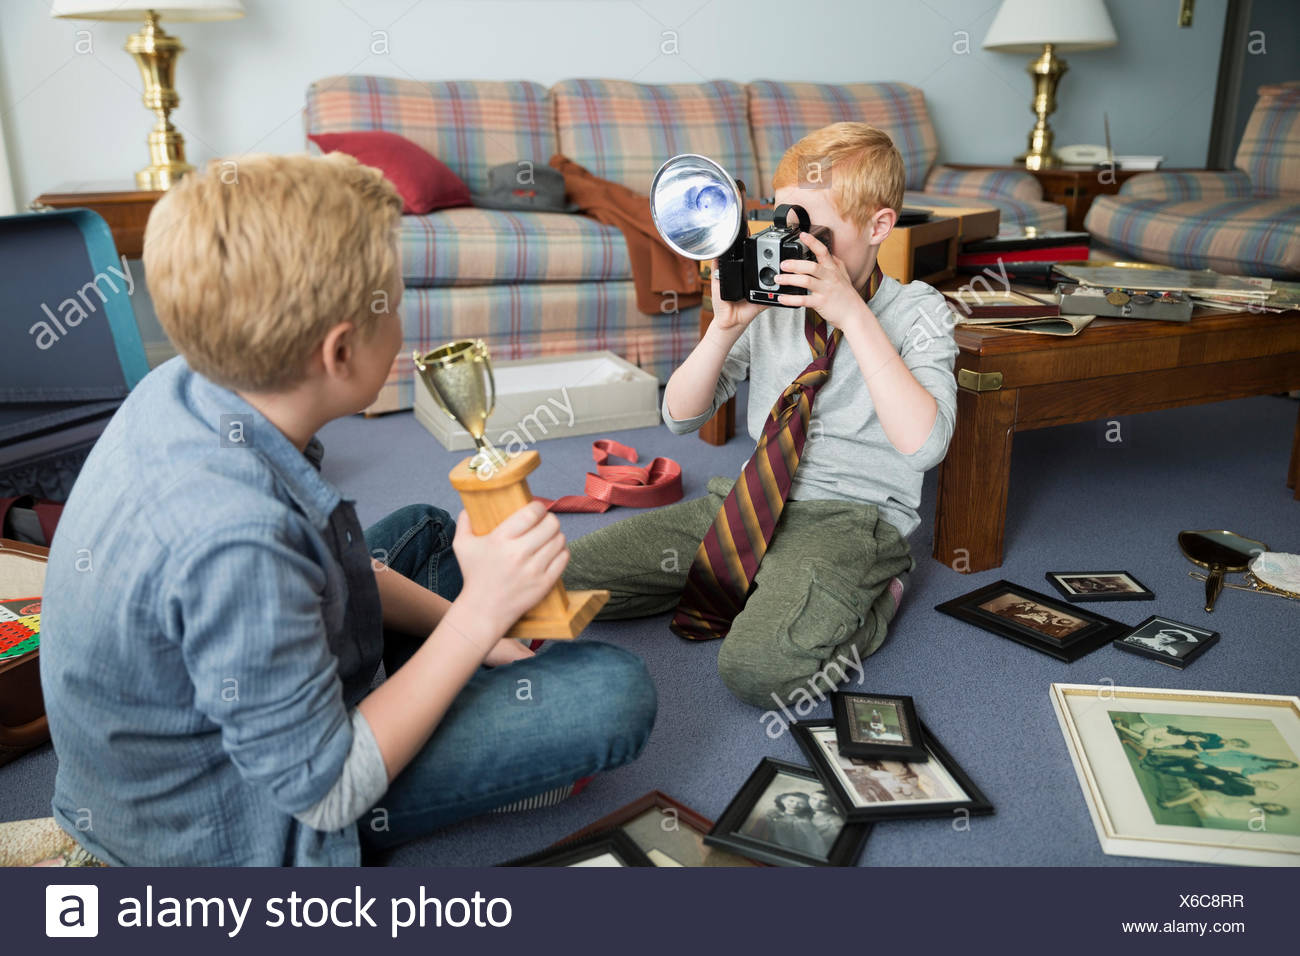 Brothers playing with old camera and trophy memorabilia - Stock Image